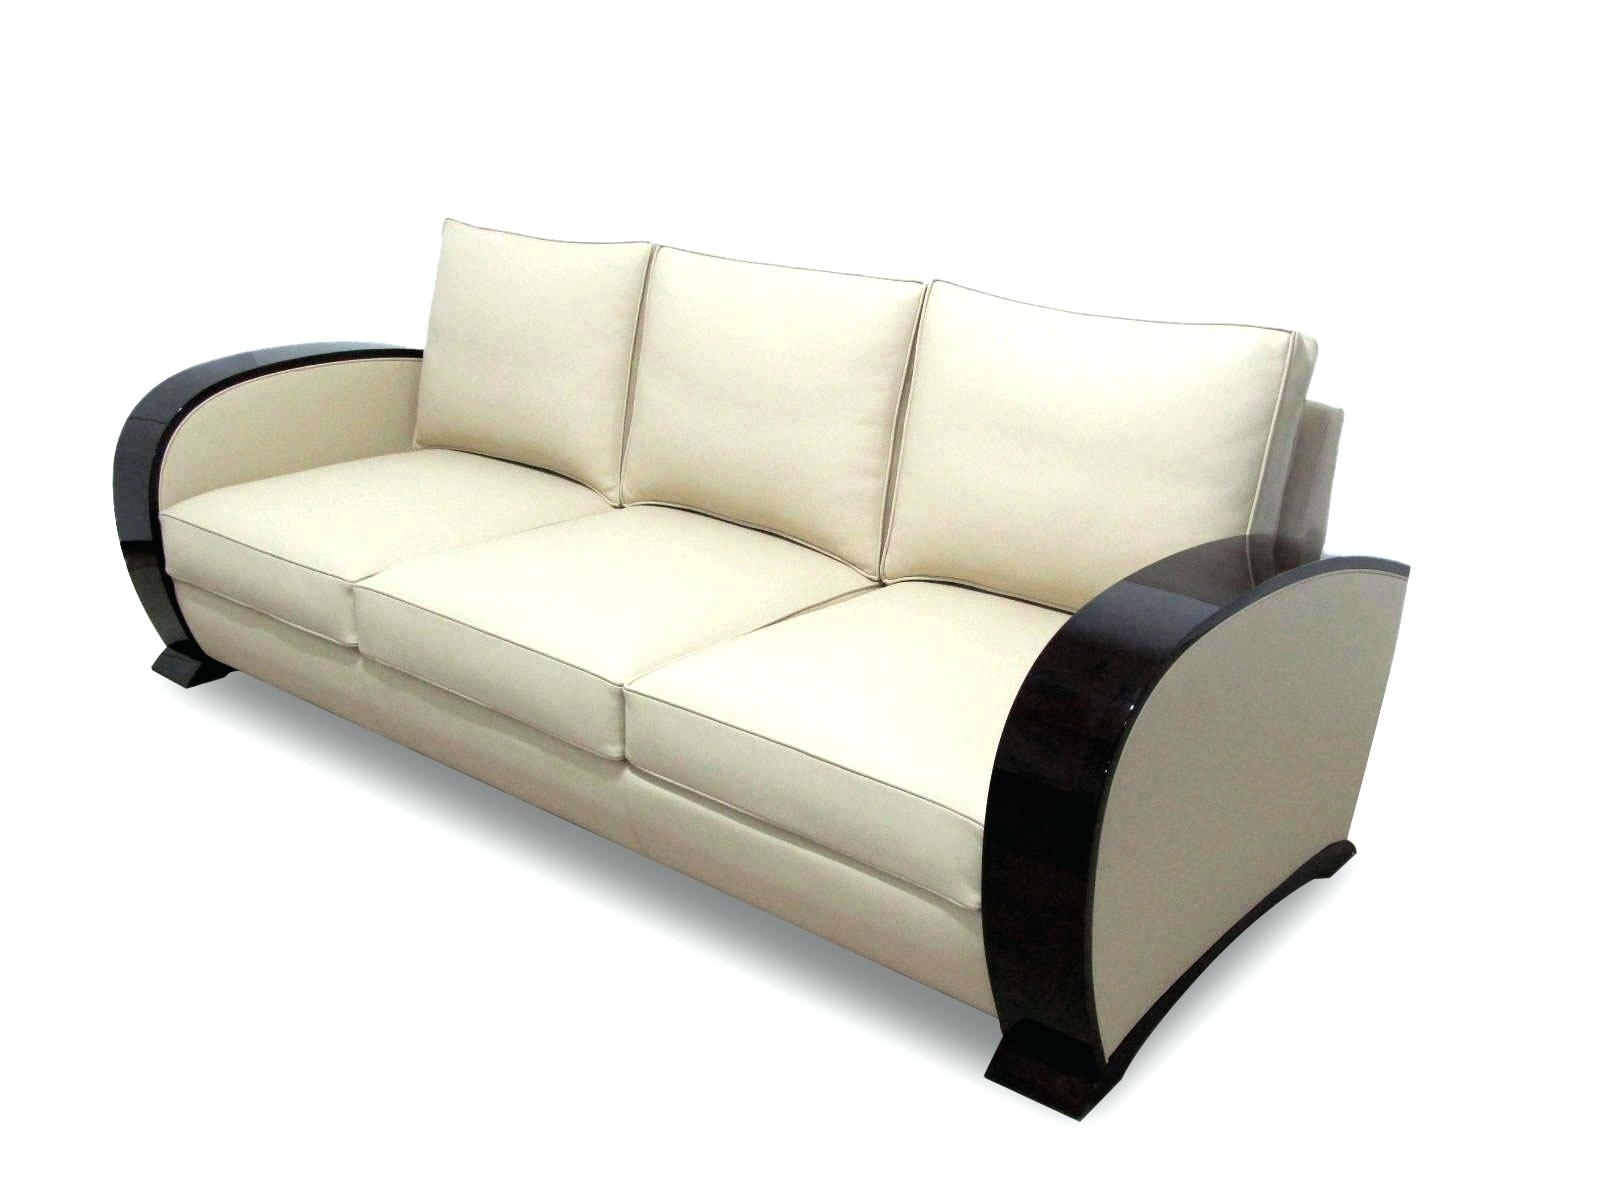 Small Sofas For Sale Sized Sofa Philippines Bed Uk – Throughout Sectional Sofas In Philippines (View 7 of 10)